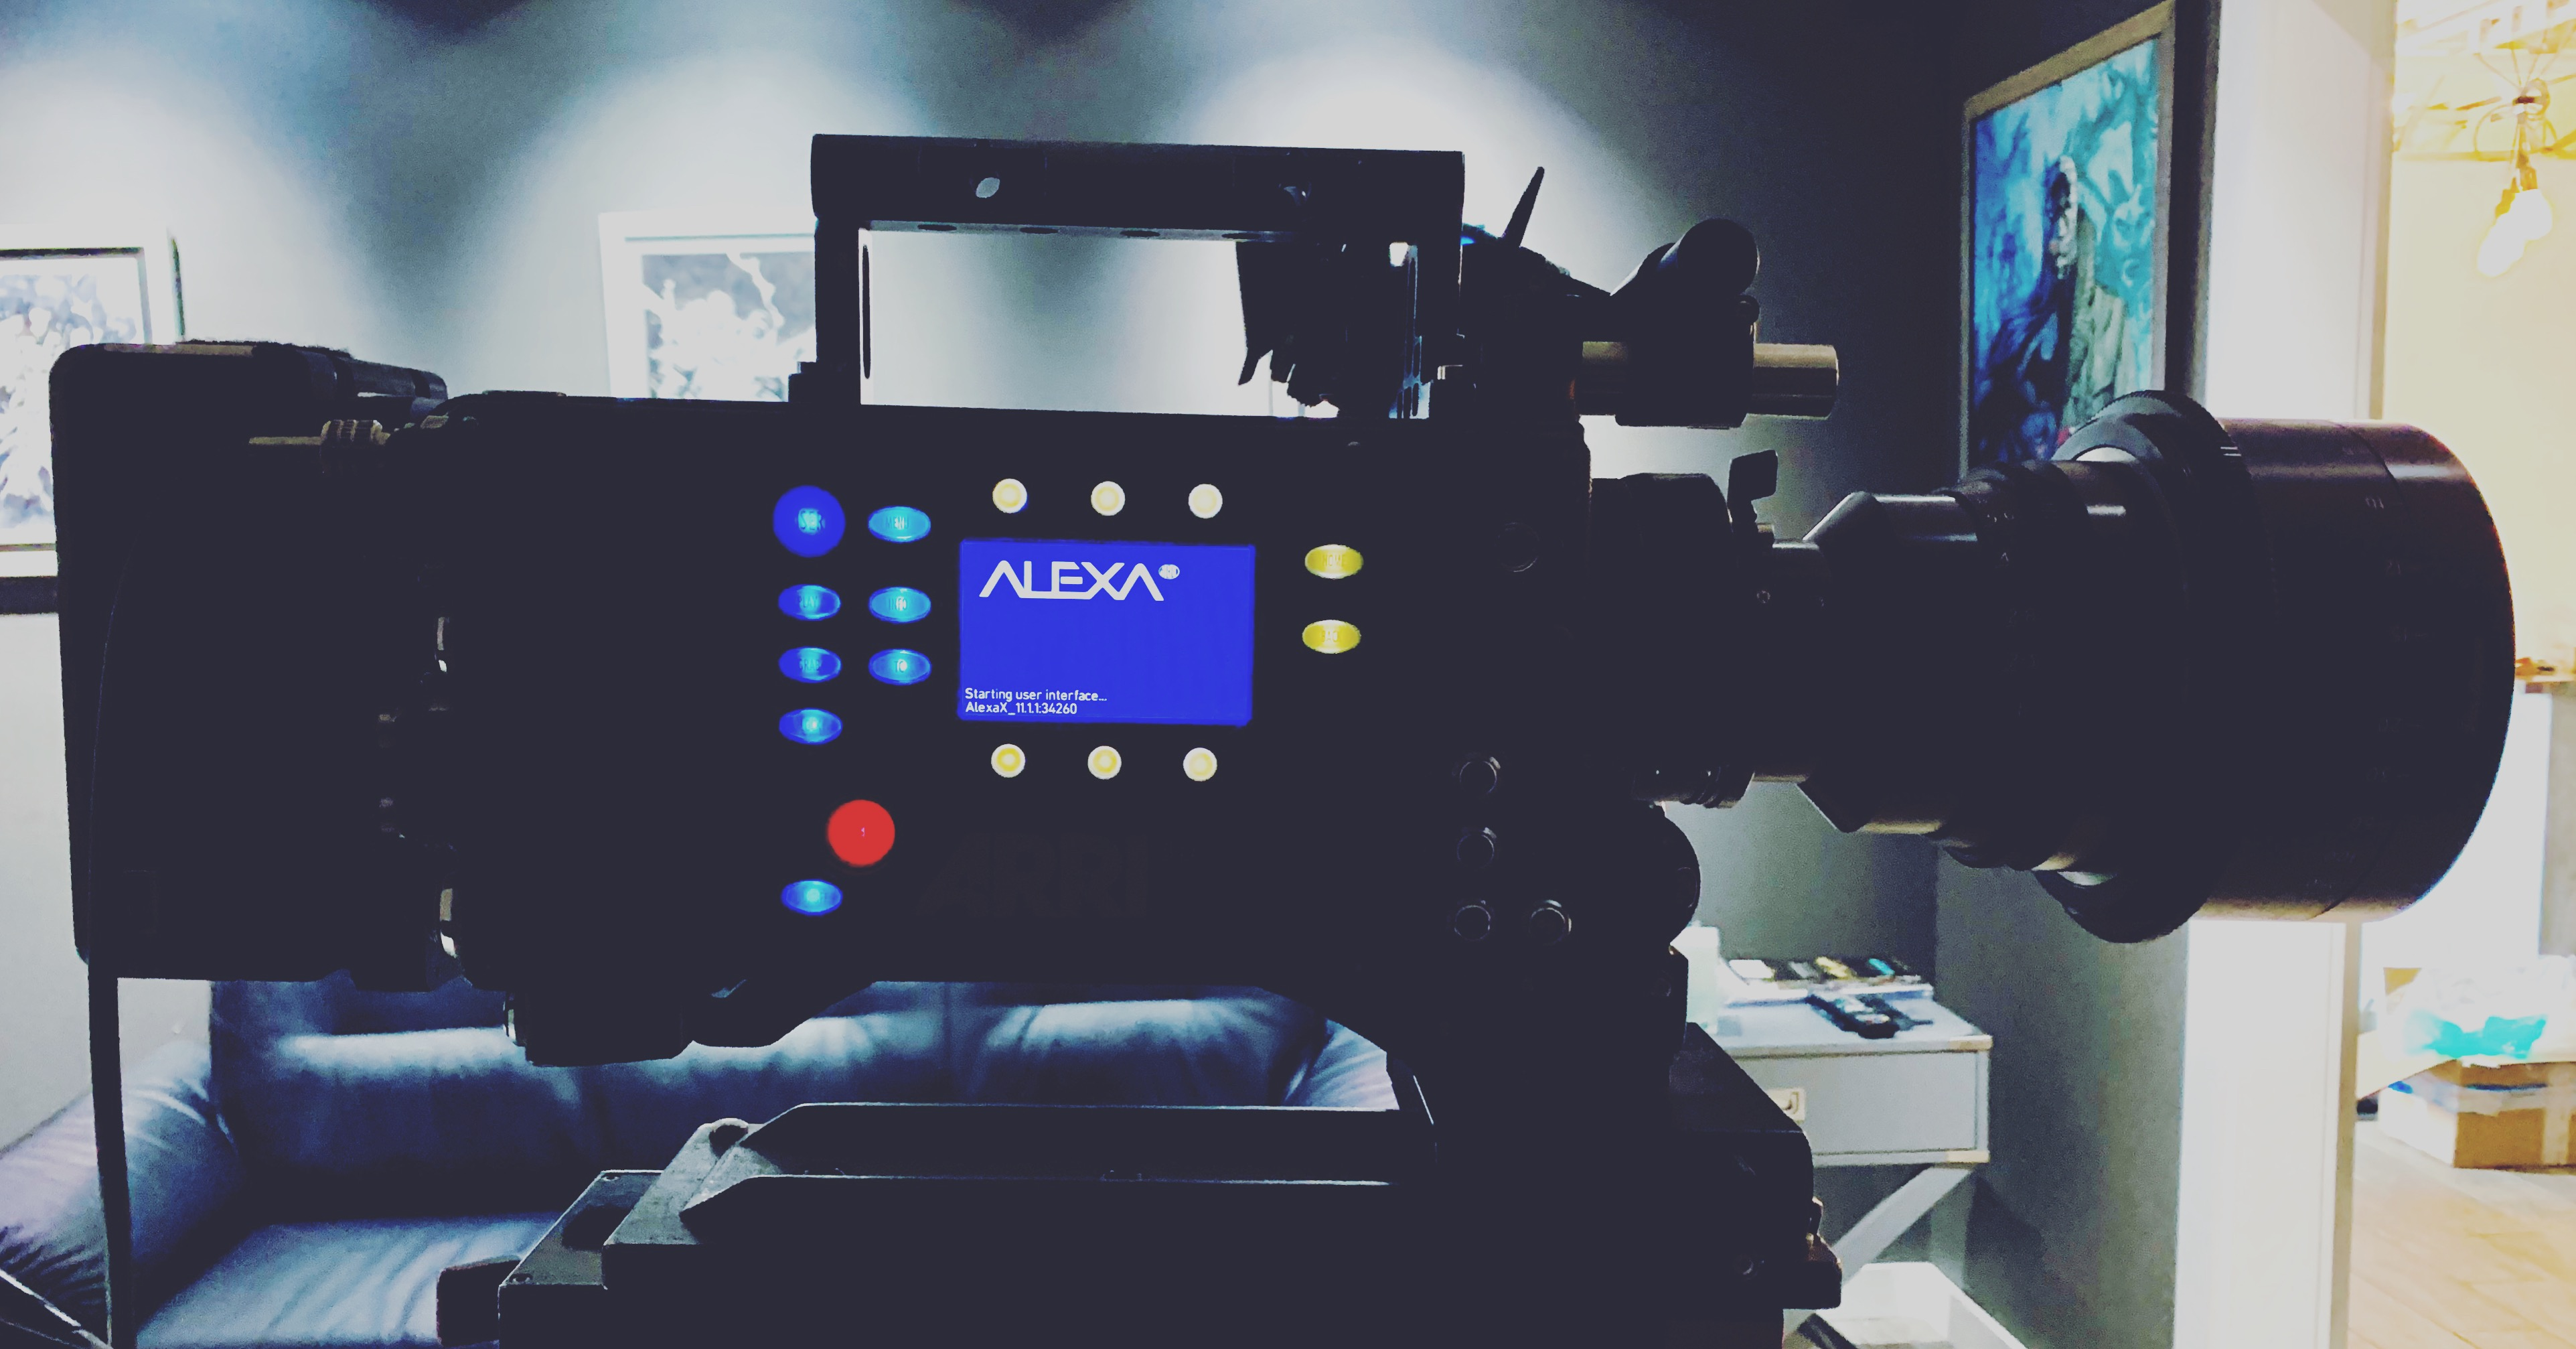 Arri Alexa XT, camera / light & grip rental, red, monstro, vv, 8k, camera rental, detroit based production company, film camera rental, camera, camera rental, Arri rental, arri cam, Arri camera rental, Arri Detroit, arri michigan, Alexa rental, Alexa Detroit, Alexa michigan, Arri Alexa Detroit